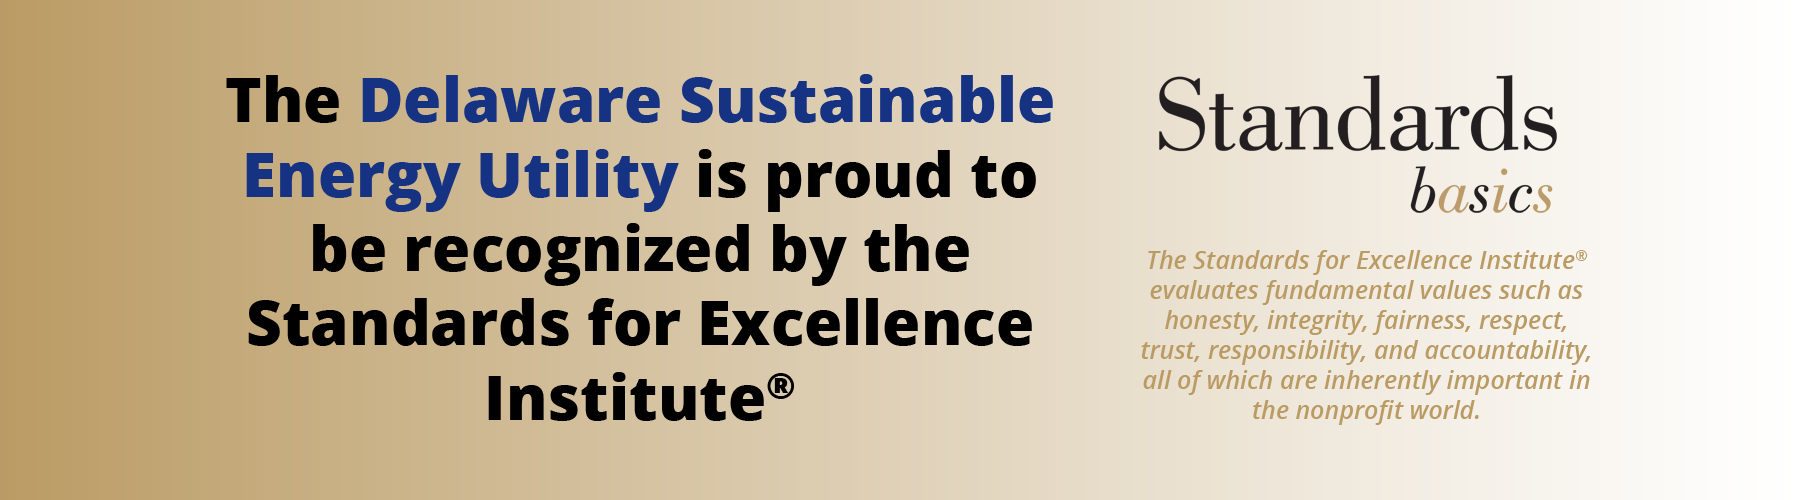 DESEU proud to be recognized by the Standards for Excellence Institute